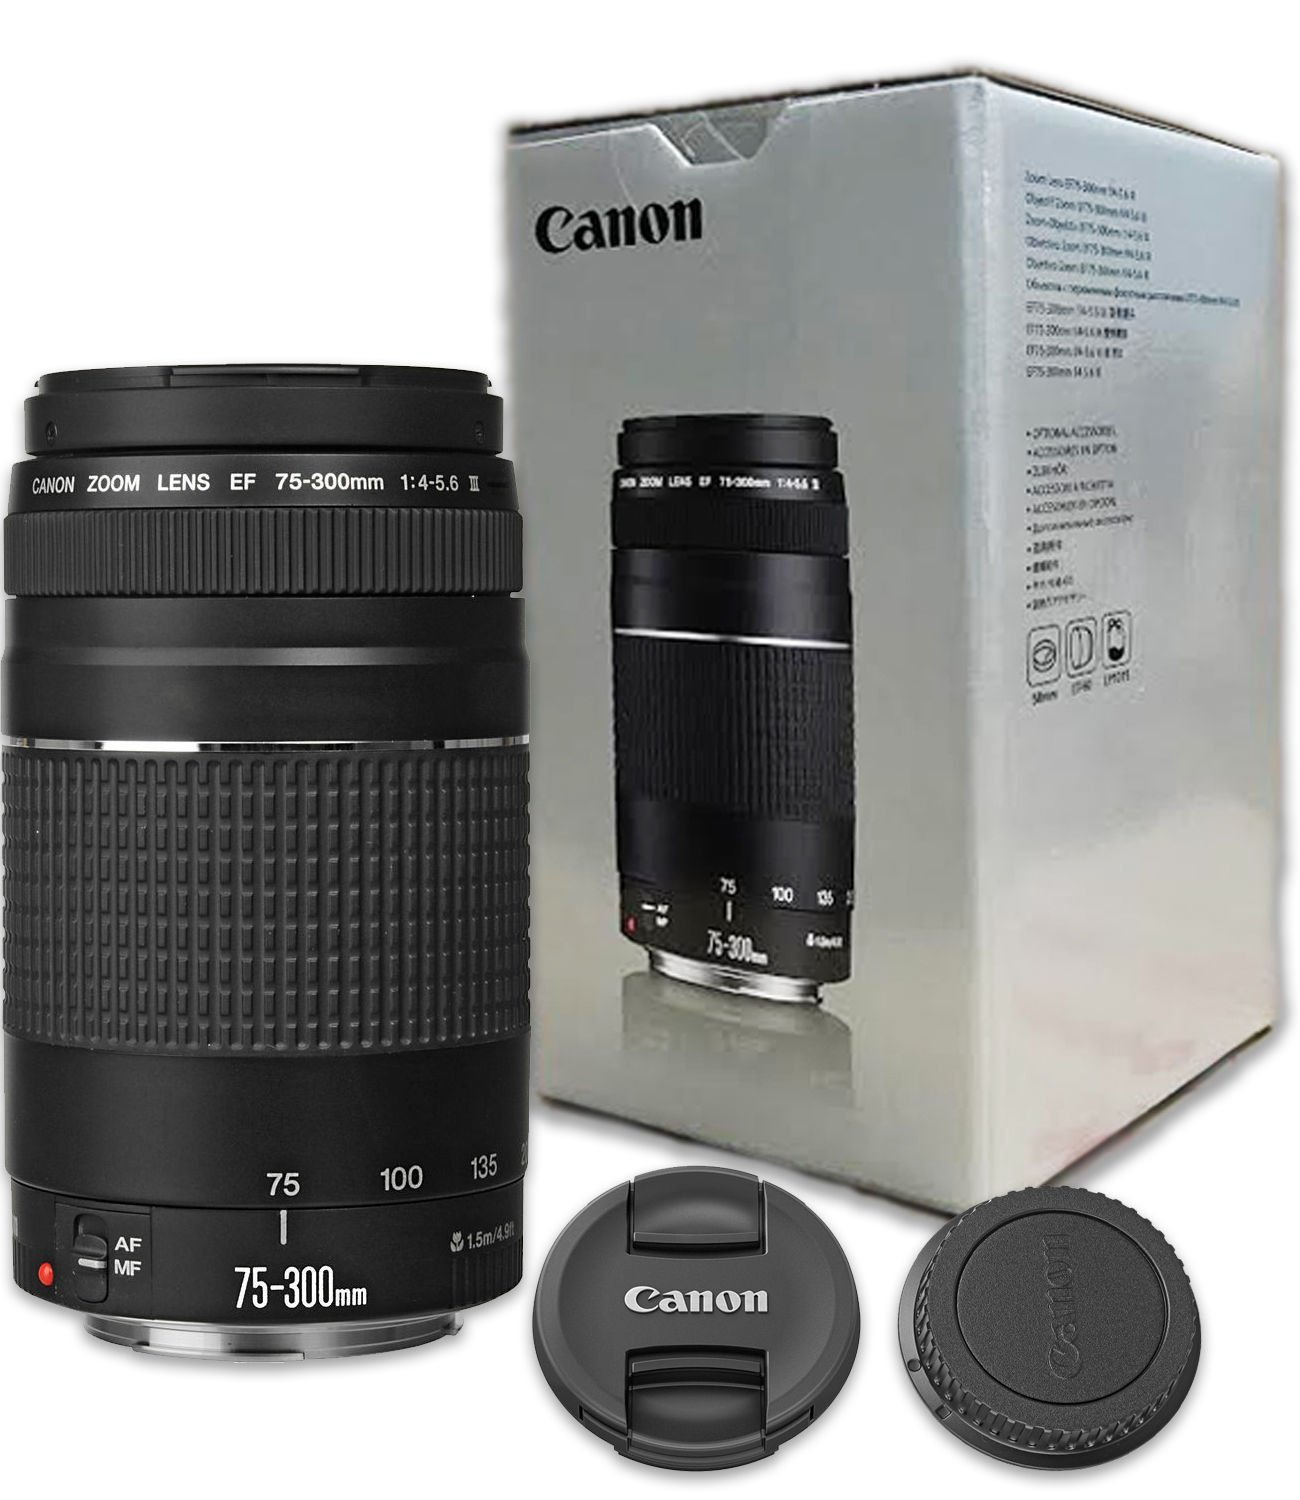 Particular Canon Ef 75 300mm F4 5 6 Iii Lens Canon 70d Battery Amazon Canon 70d Amazon Uk dpreview Canon 70d Amazon